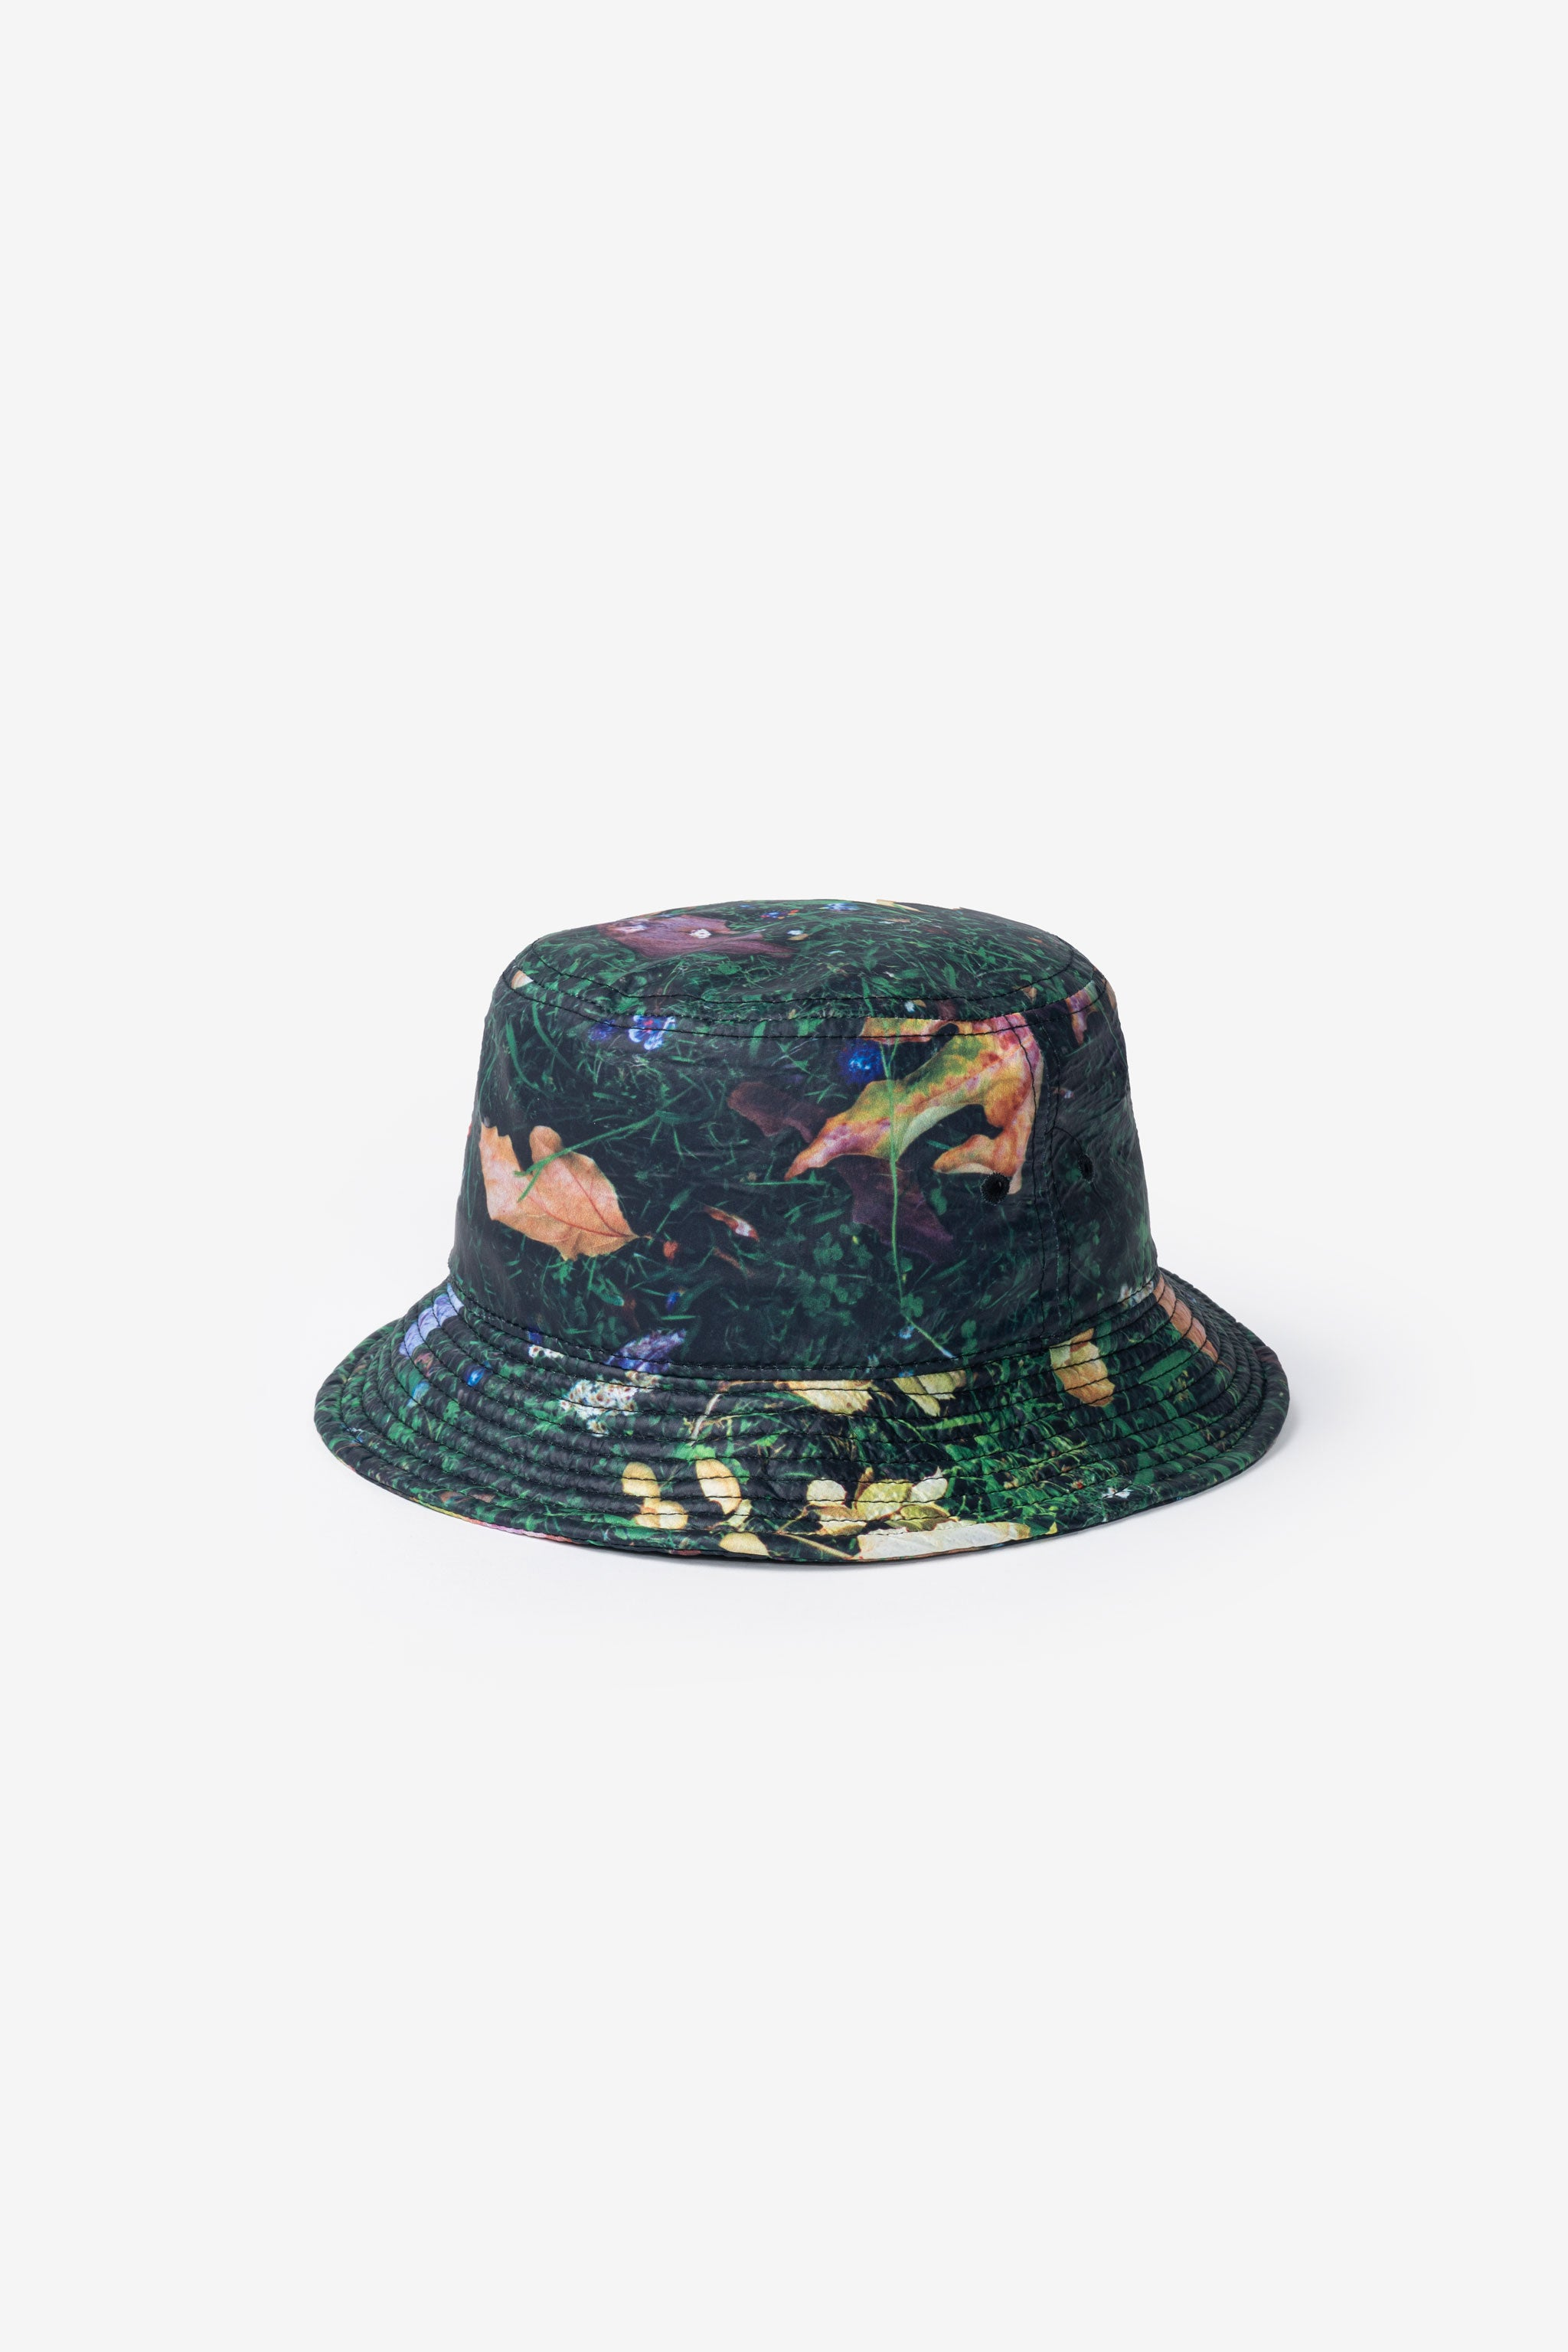 Goodfight Camp Craft Bucket Hat